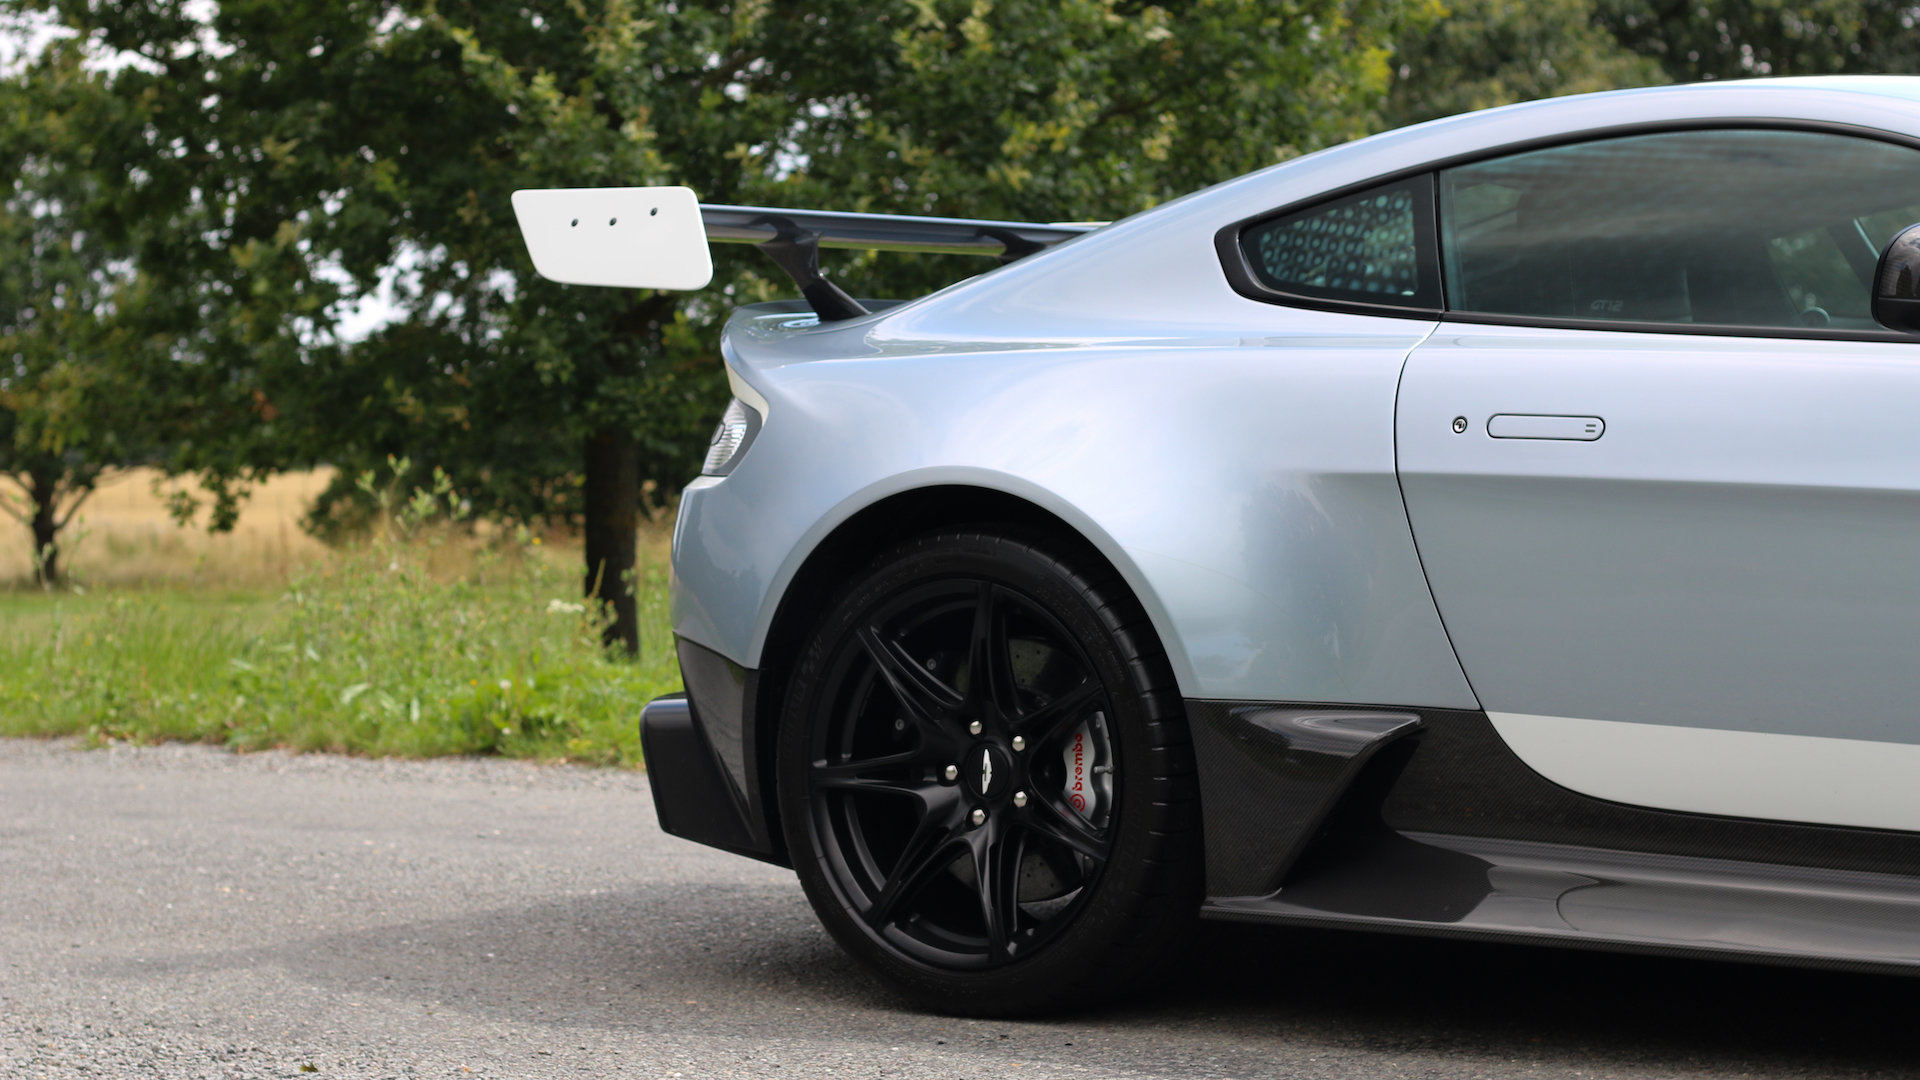 2015 Aston Martin GT12 - Skyfall Silver - 1 of 100 For Sale (picture 4 of 6)